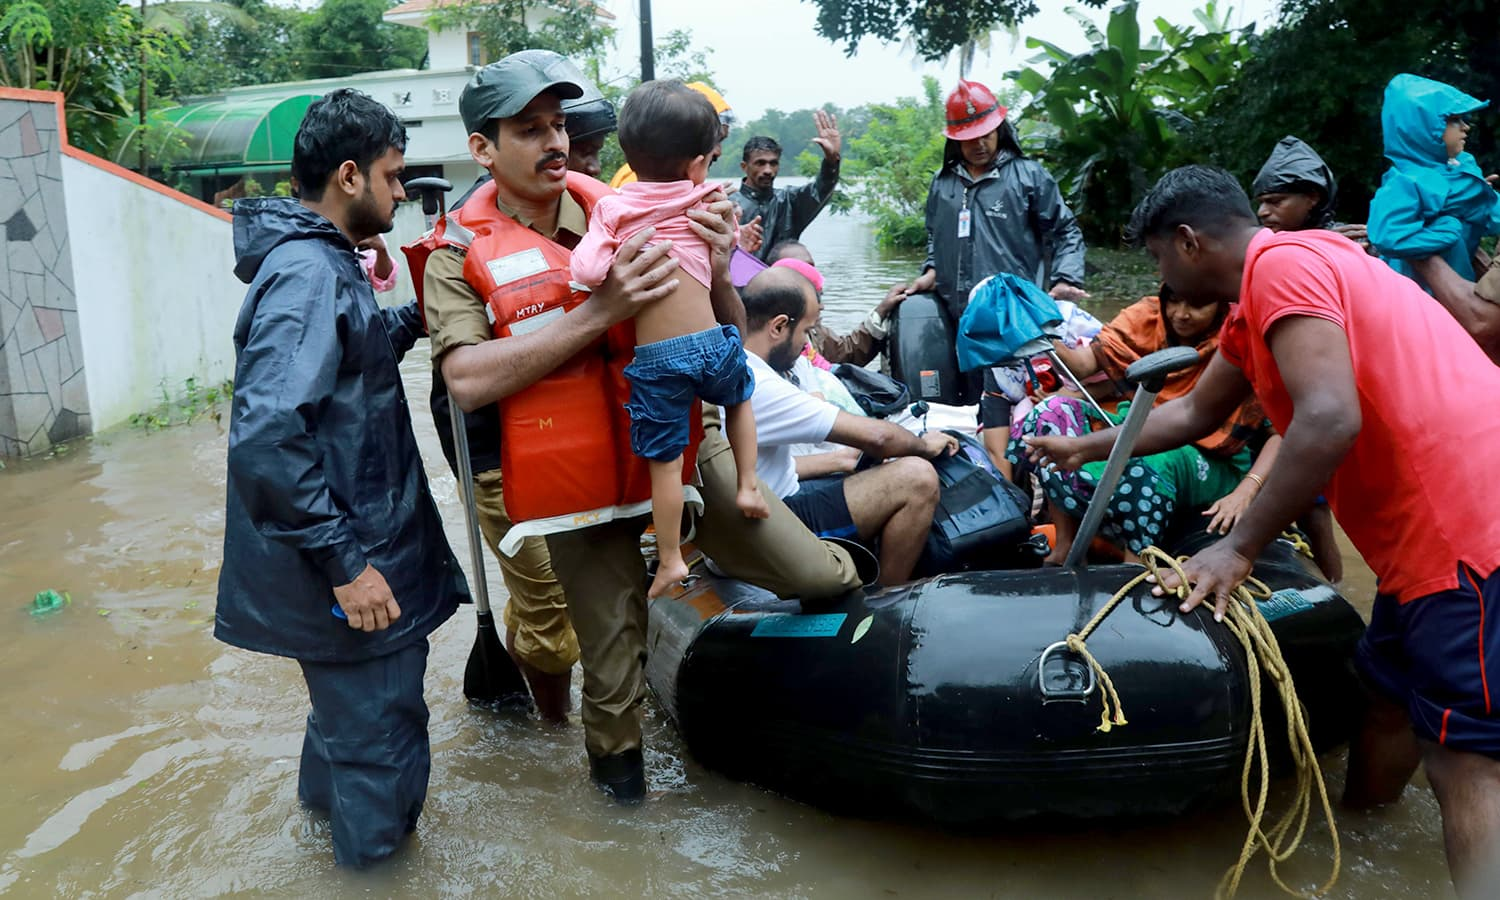 Fire and Rescue personnel evacuate local residents in an inflatable boat from a flooded area. —AFP